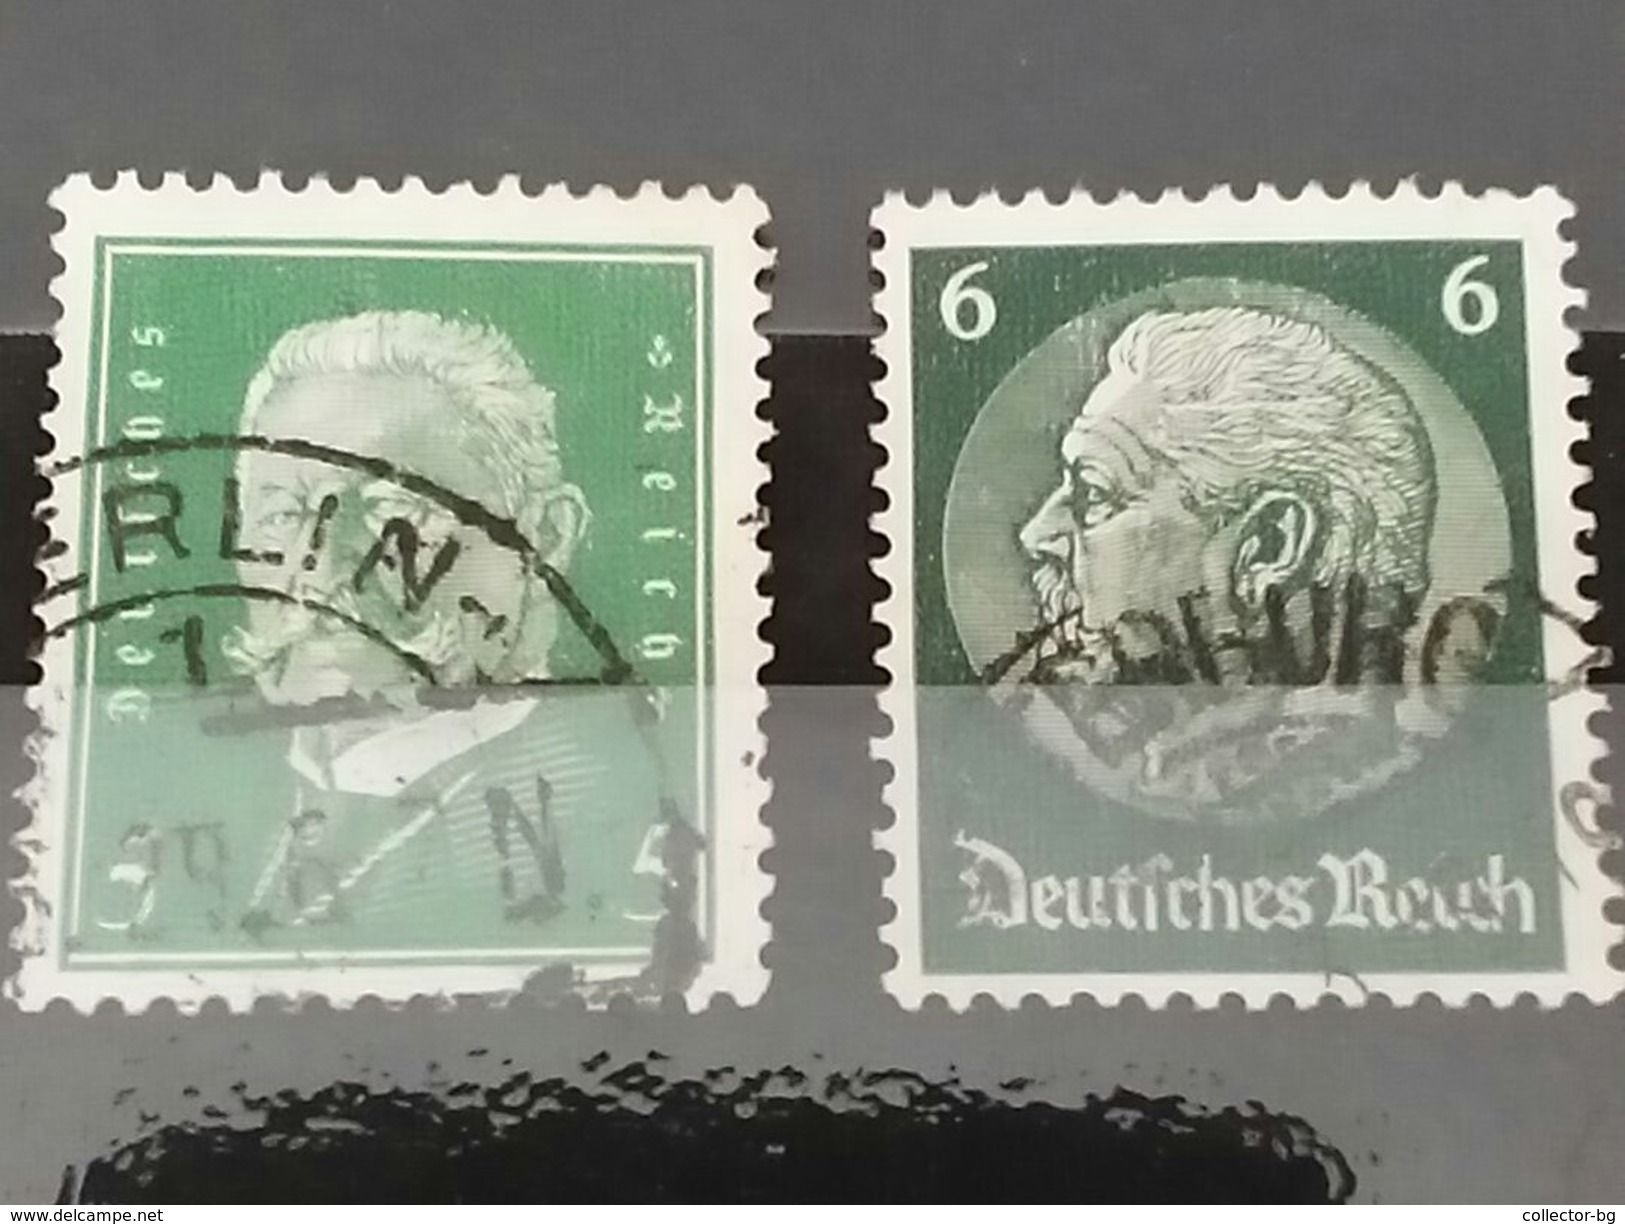 RARE GERMANY EMPIRE 5+6 MARK DEUTSCHE REICH 1929 STAMP